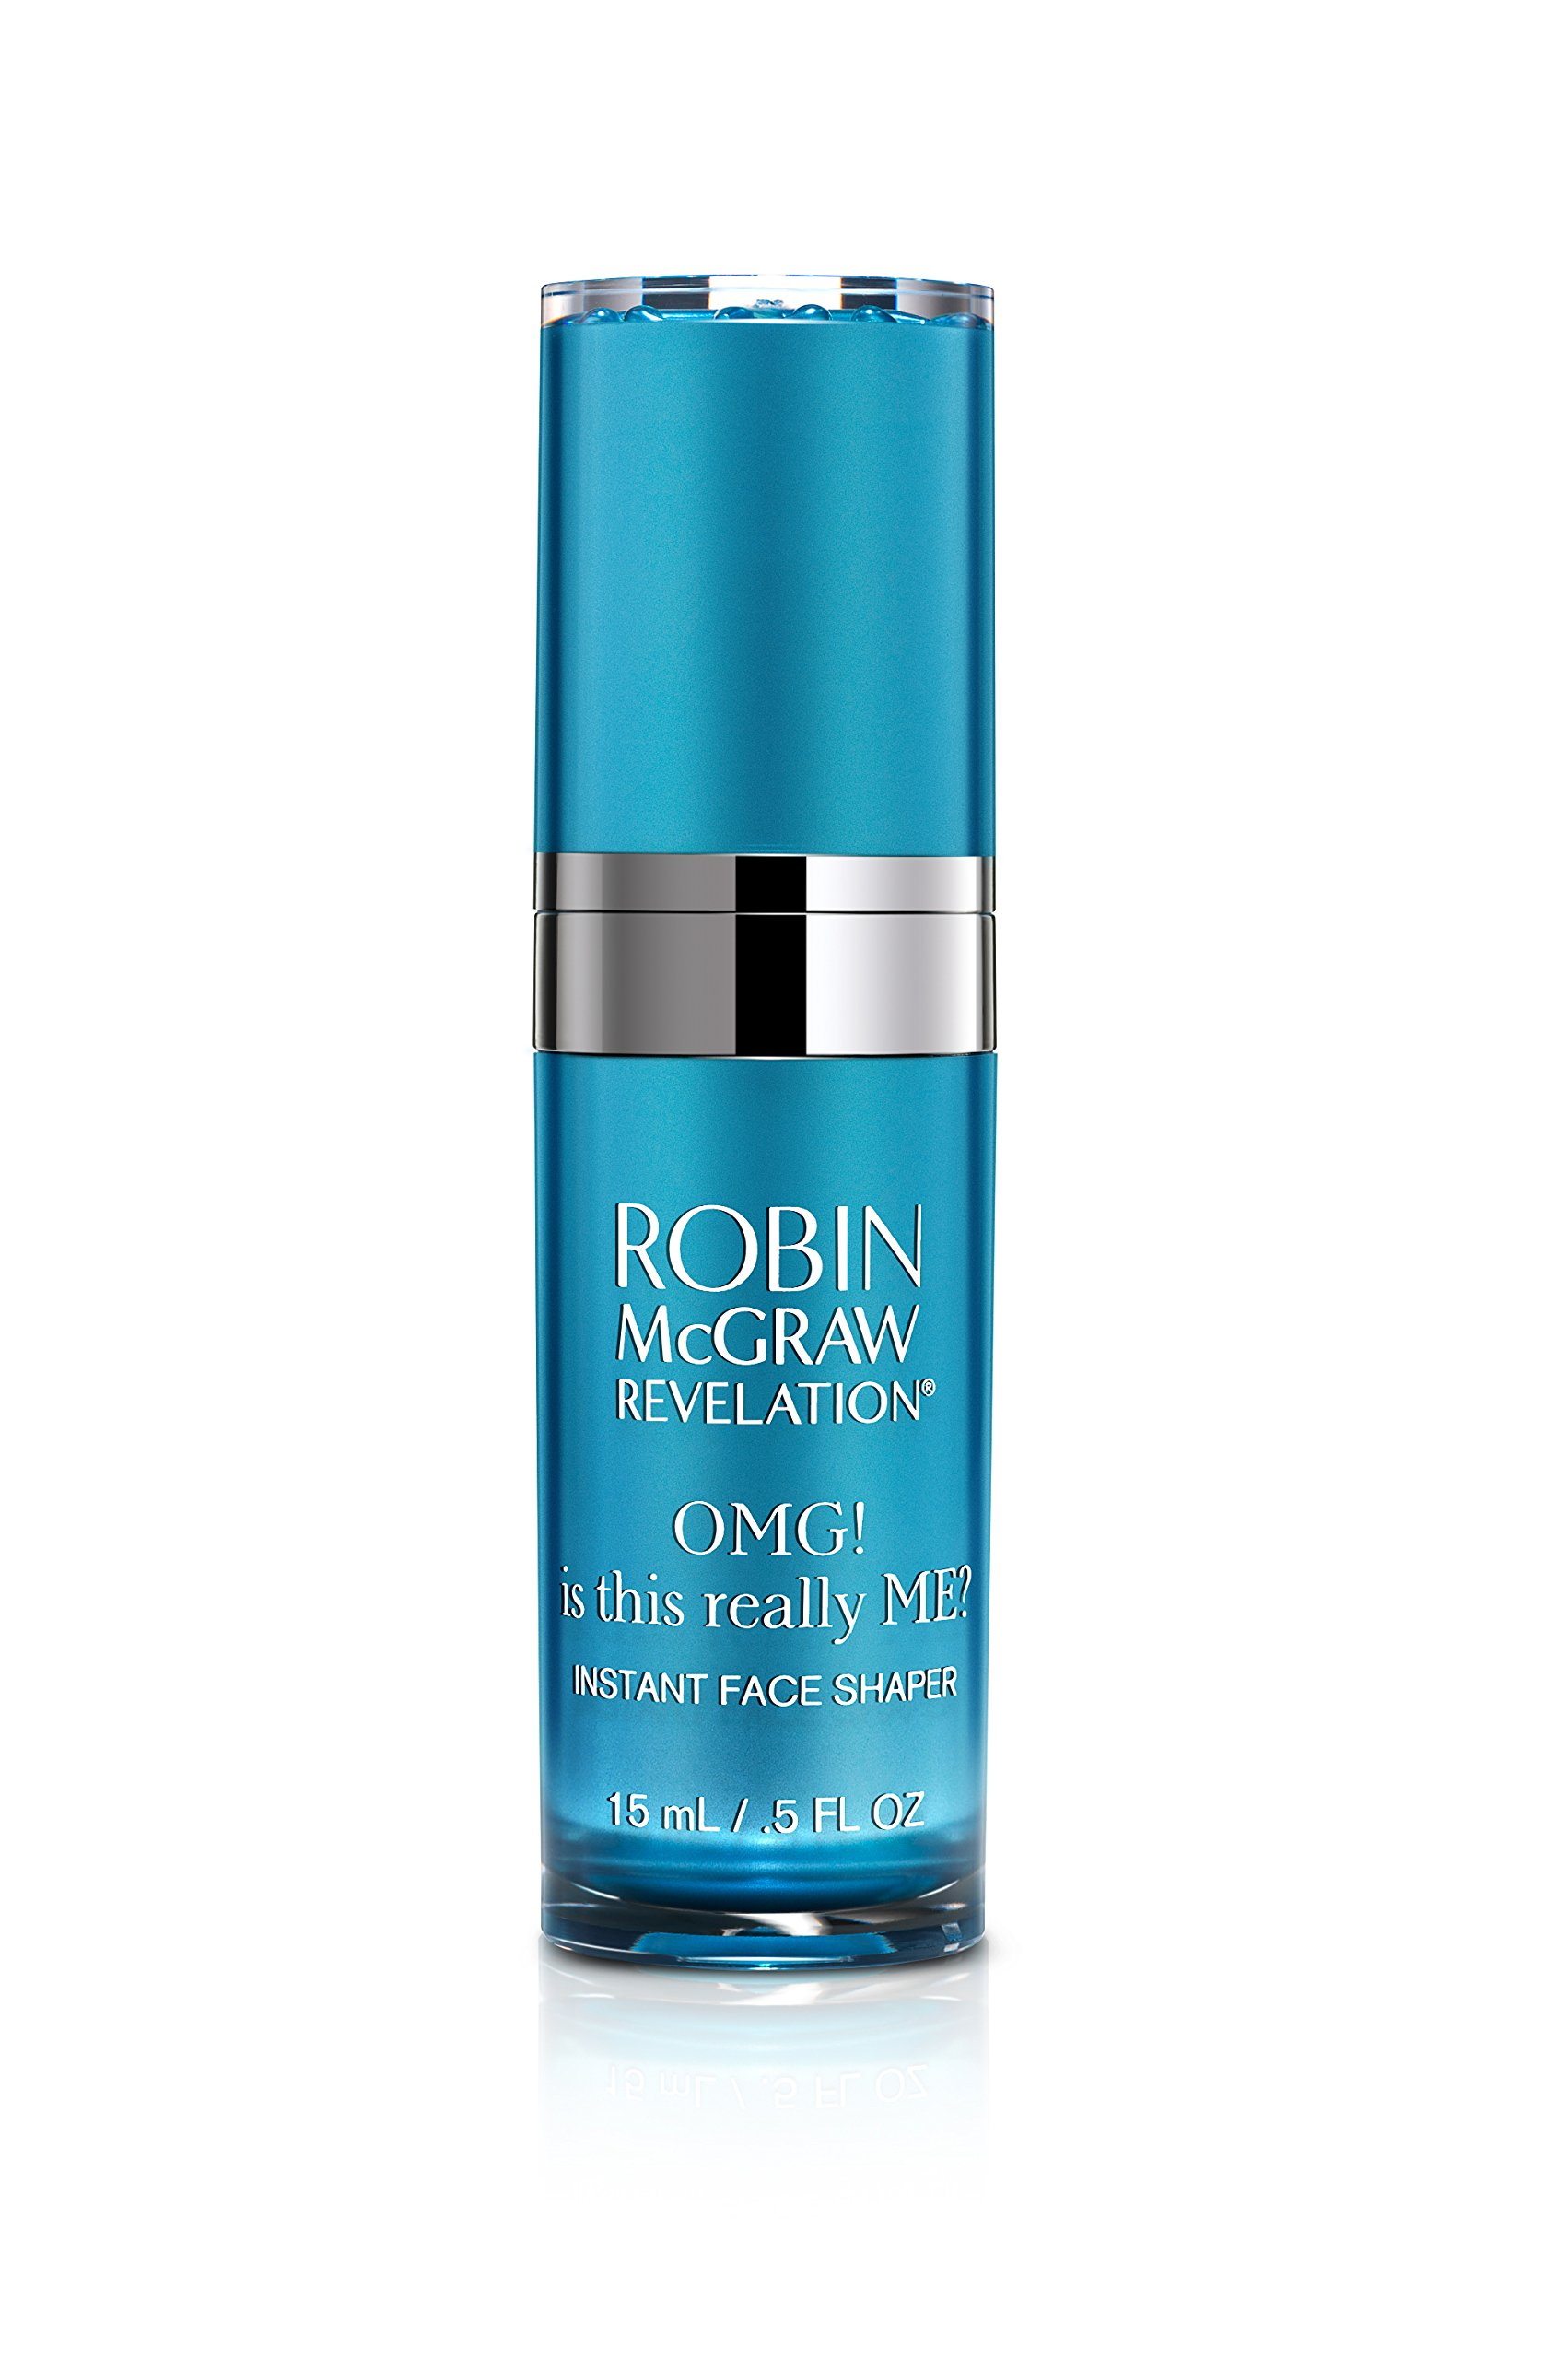 Robin McGraw Revelation OMG! is this really ME? - Instant Face Shaper, 0.5 fl. oz. by Robin McGraw Revelation